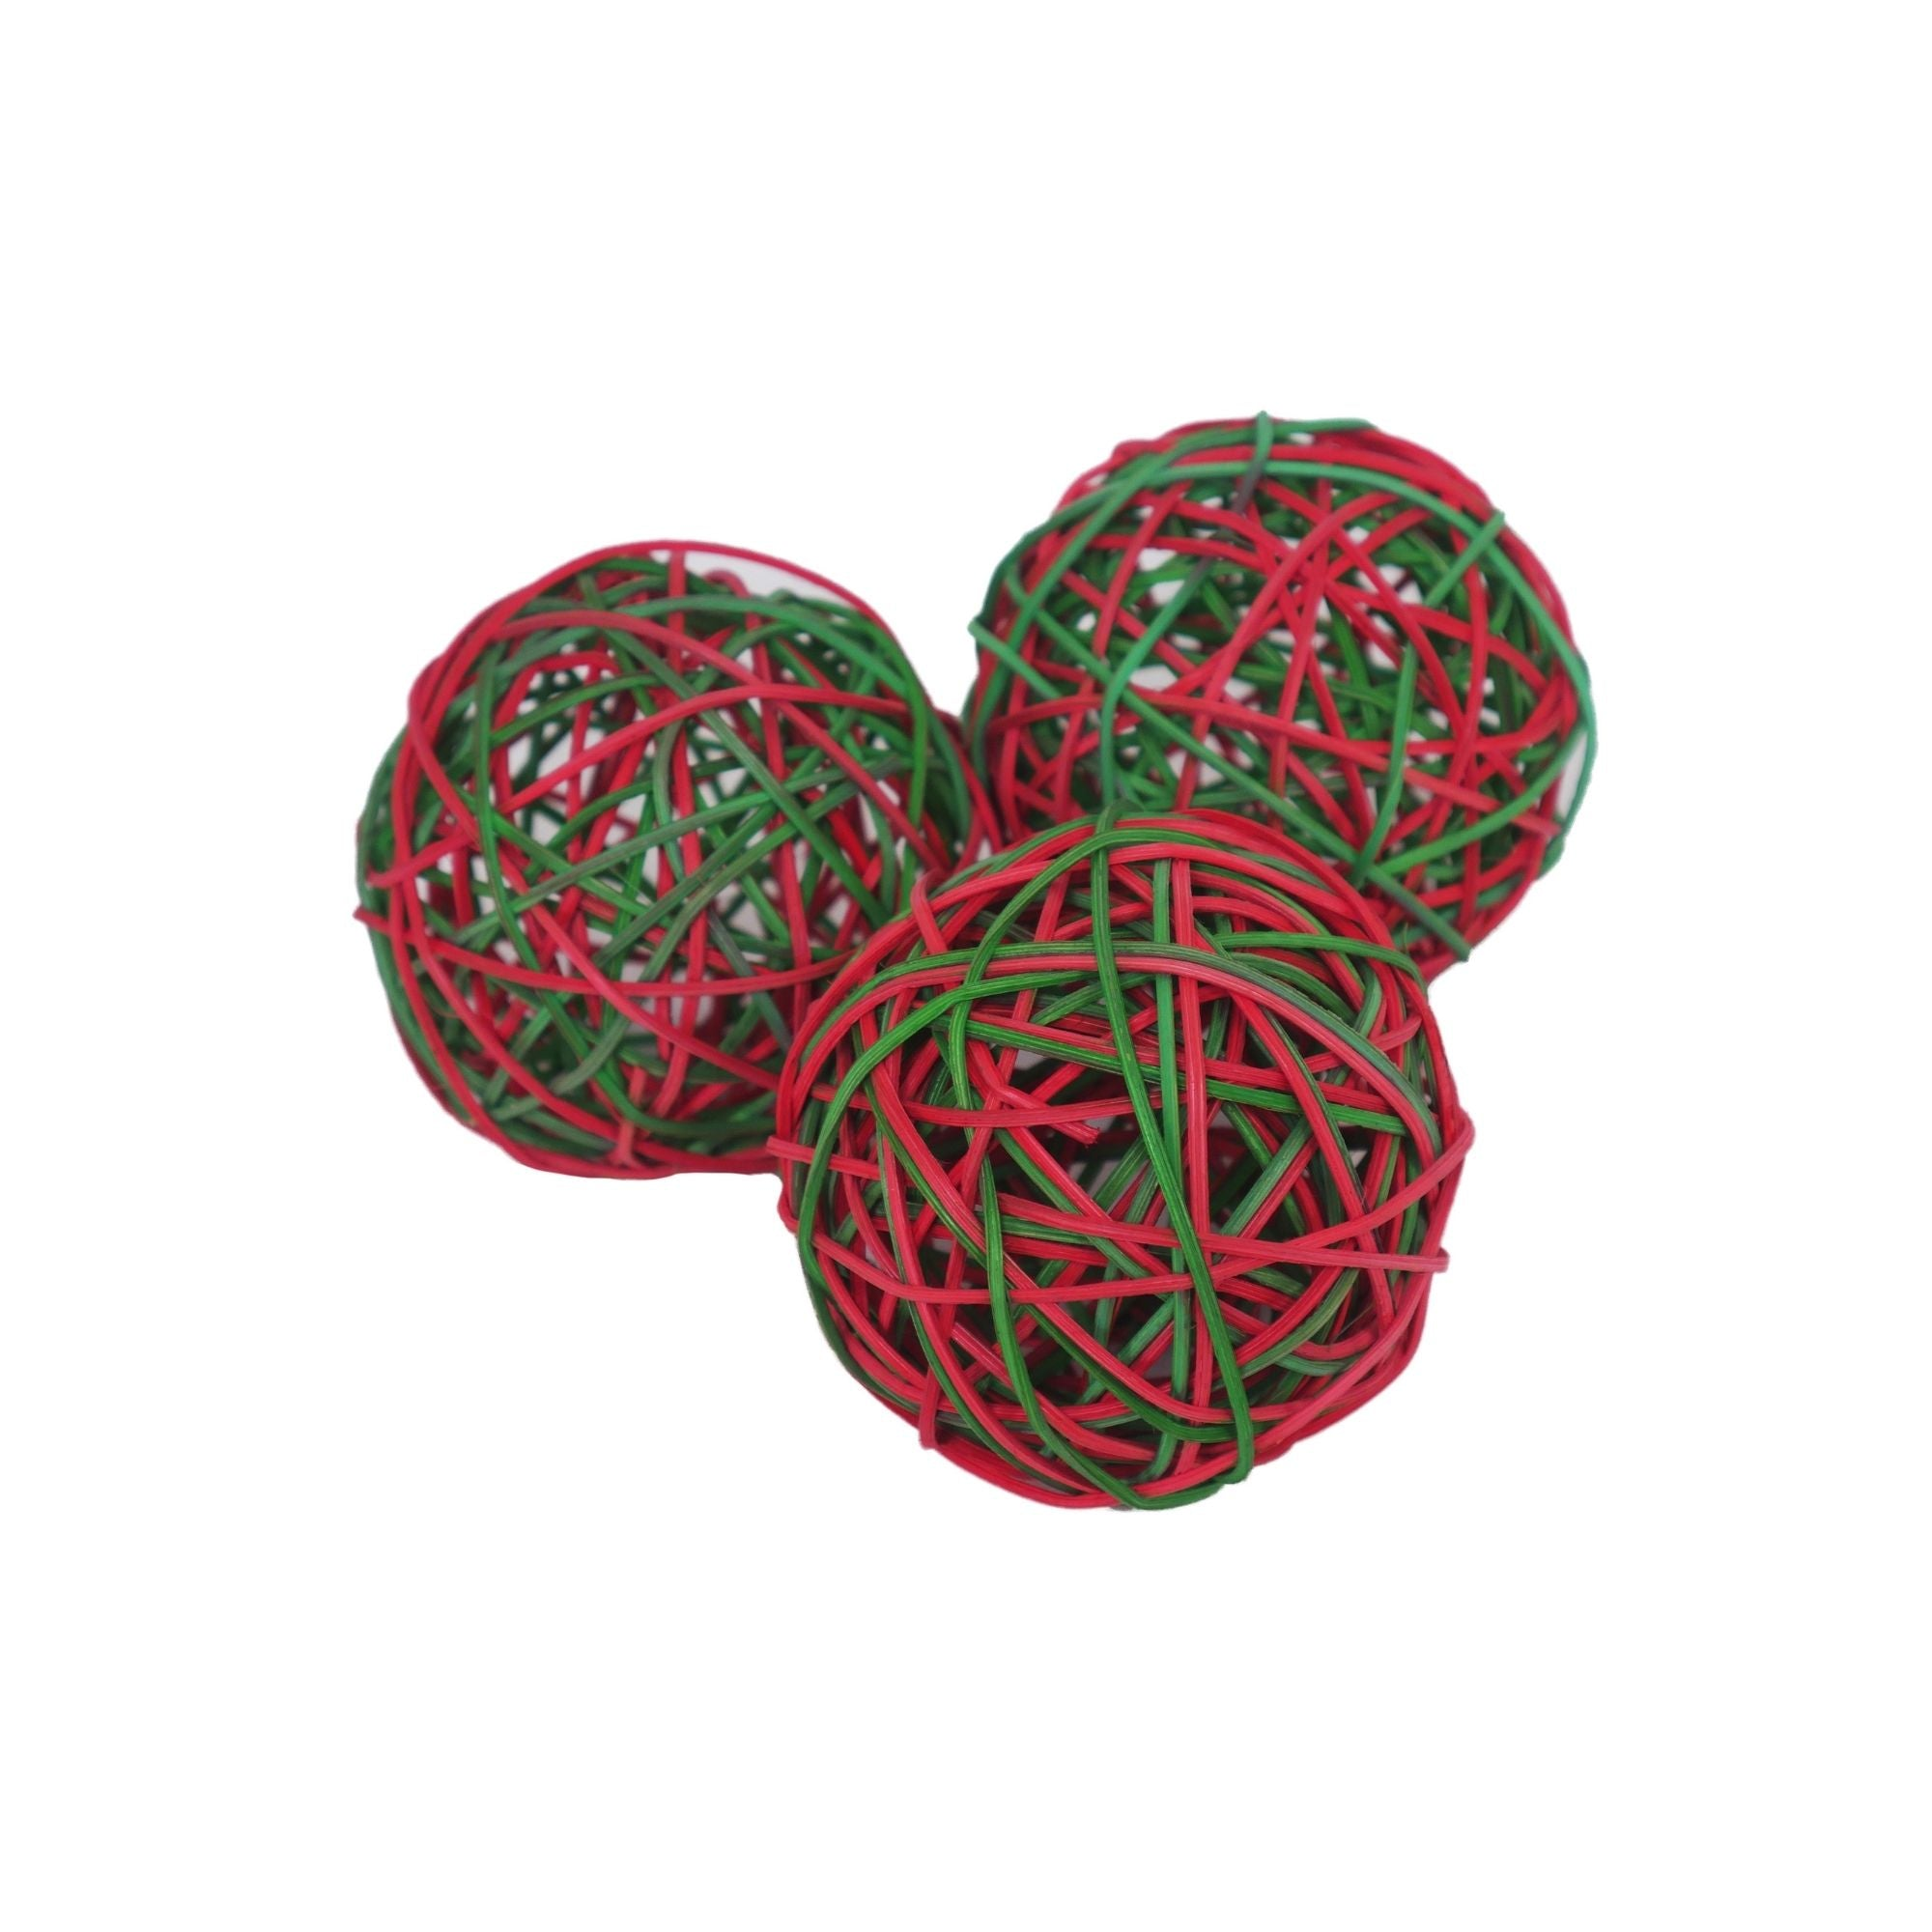 Rosewood Festive Weave-A-Ball Christmas Toy for Rabbits | Barks & Bunnies